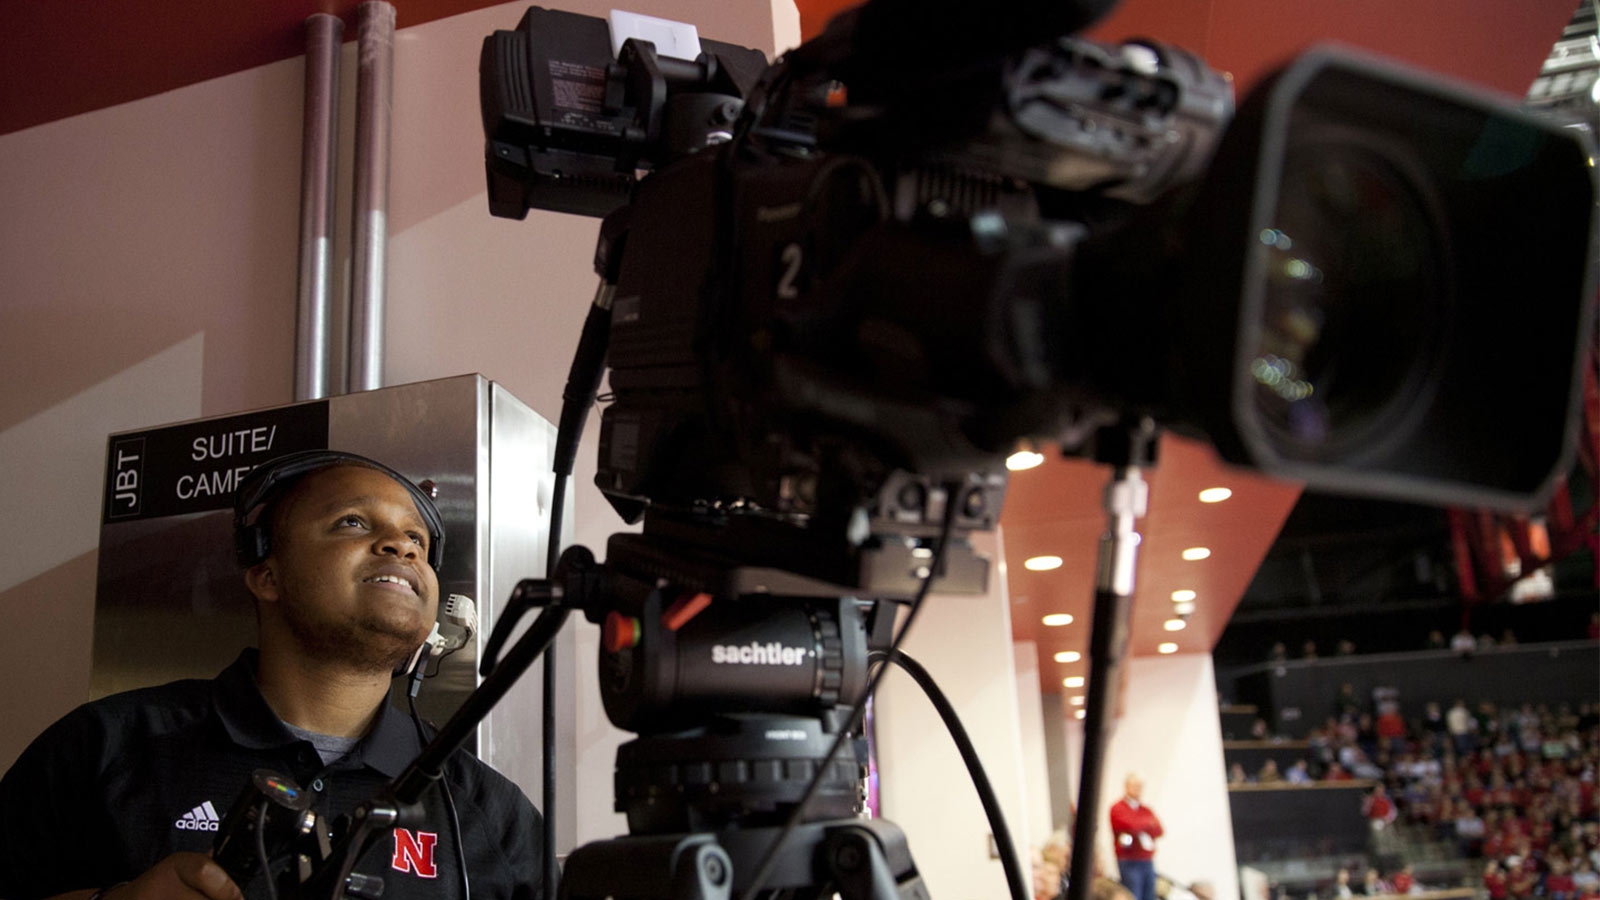 Journalism student films a football game